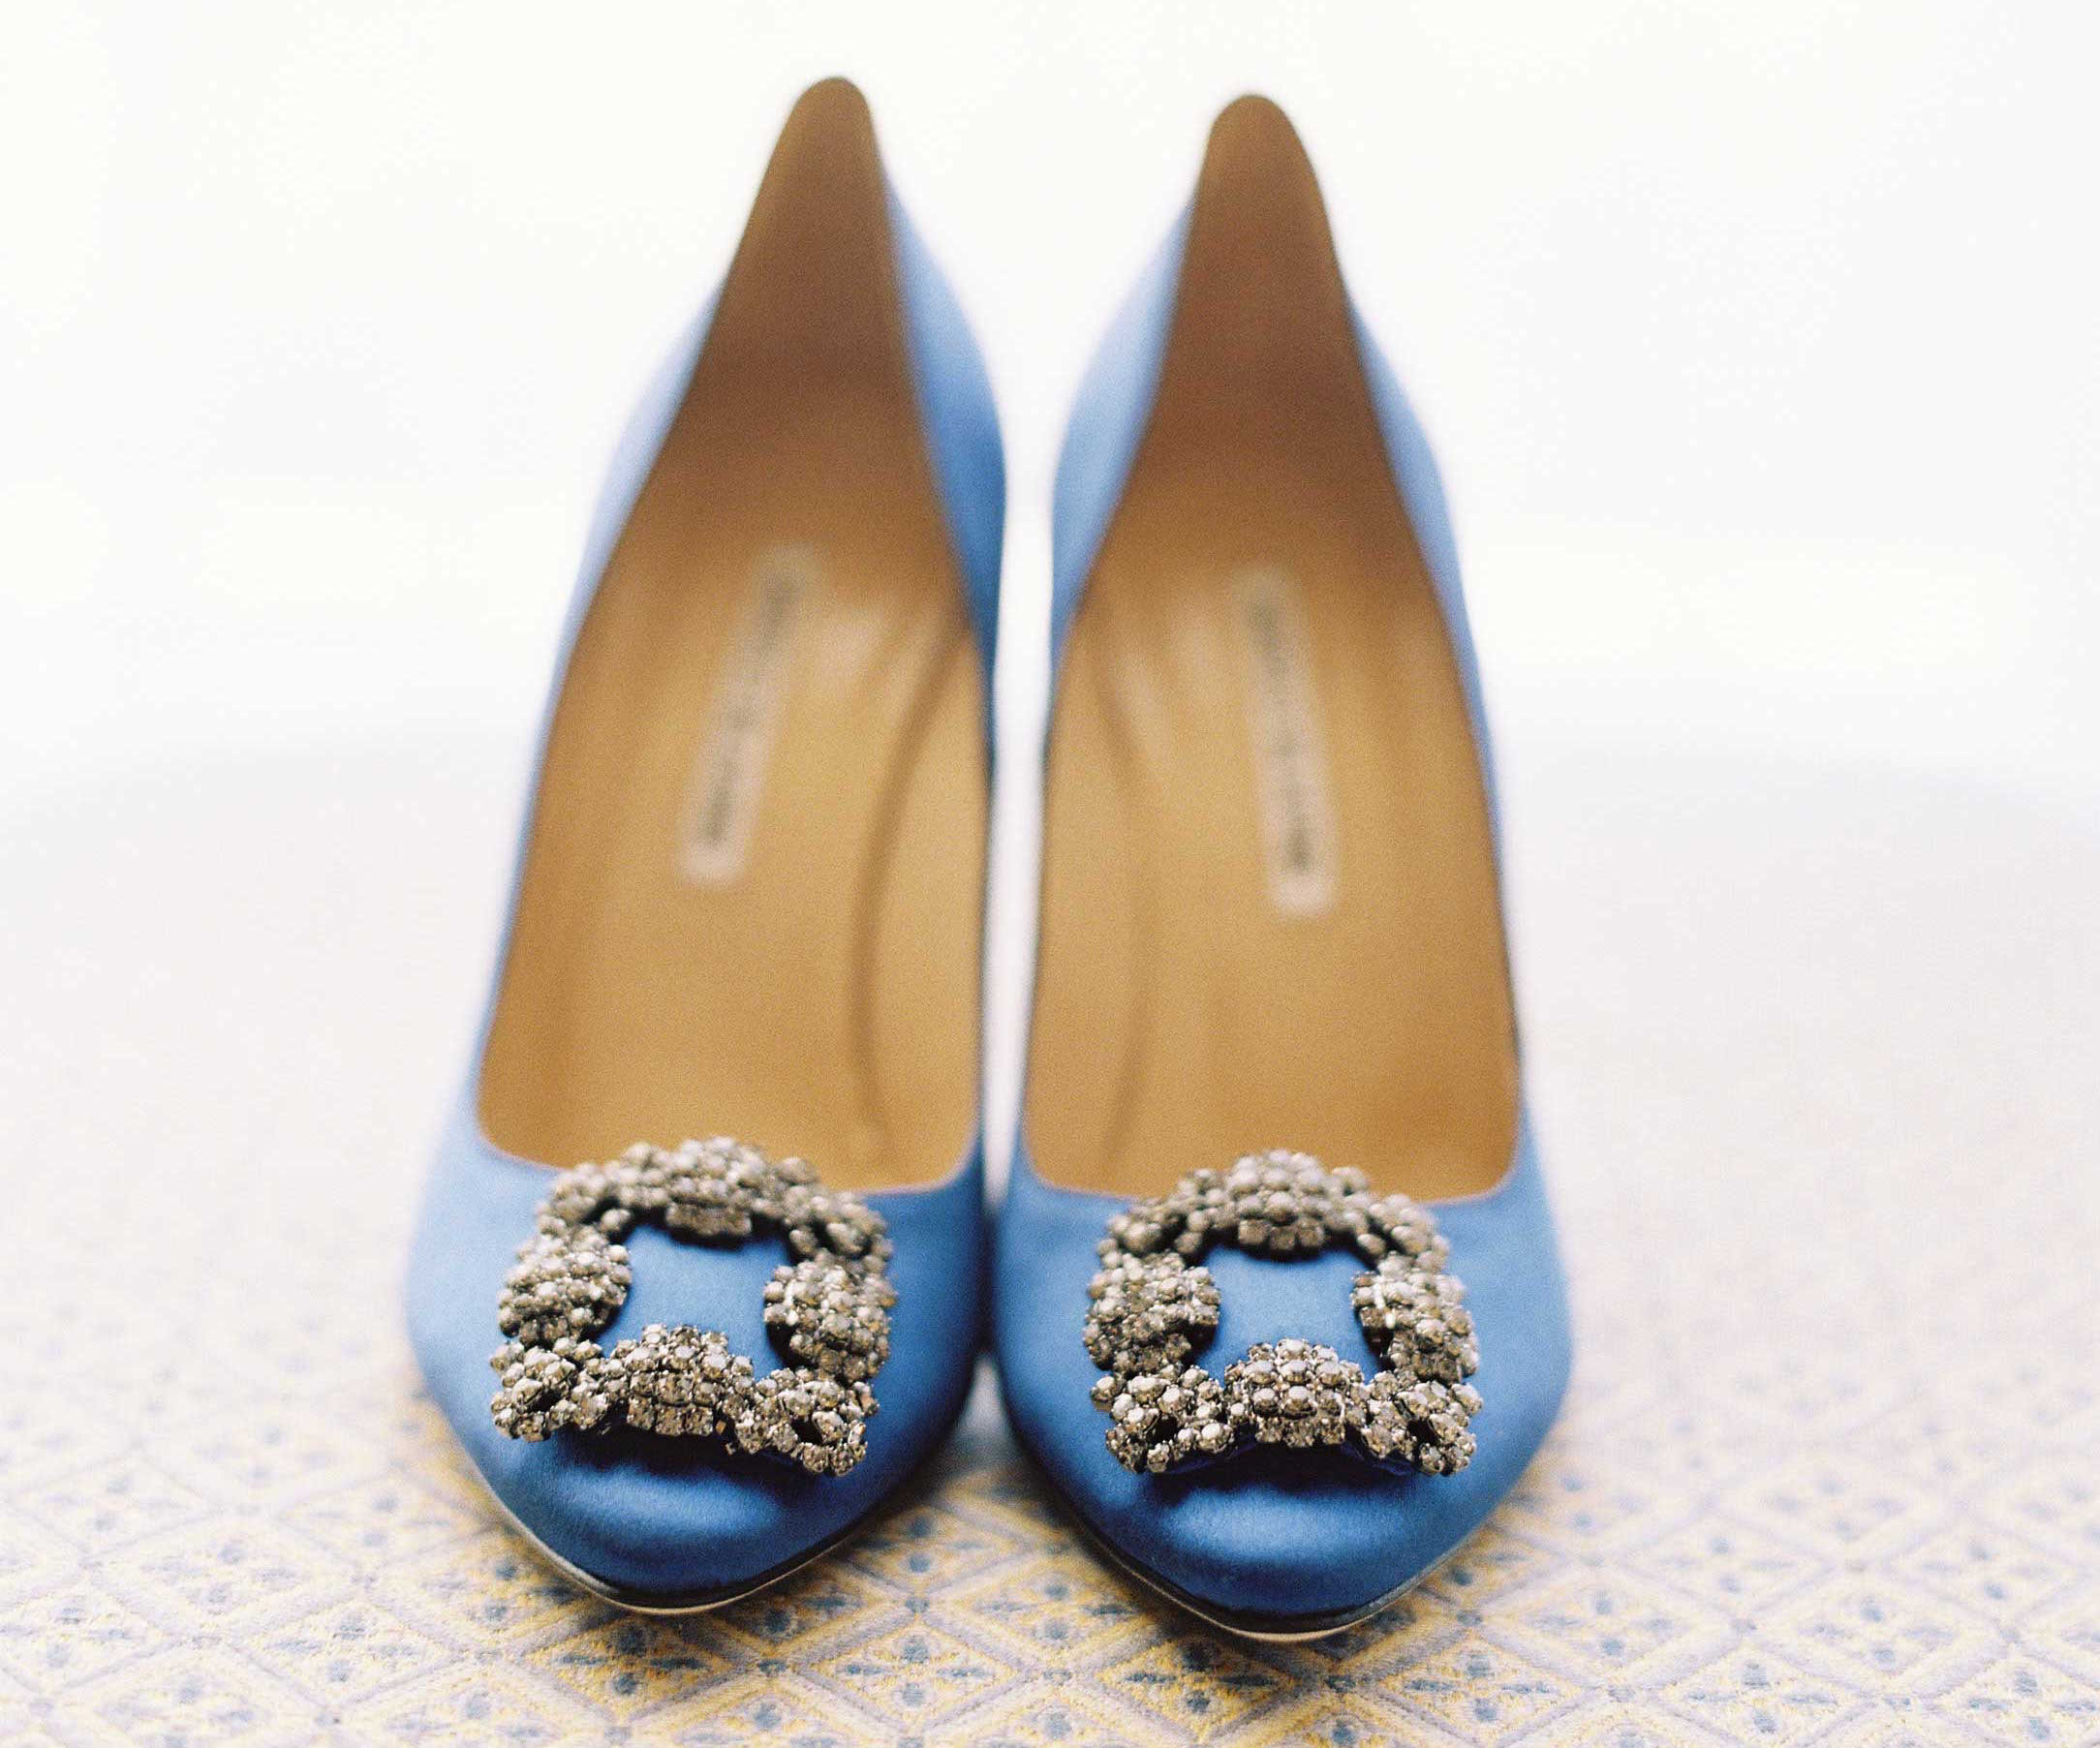 Blue wedding shoes with crystal buckles